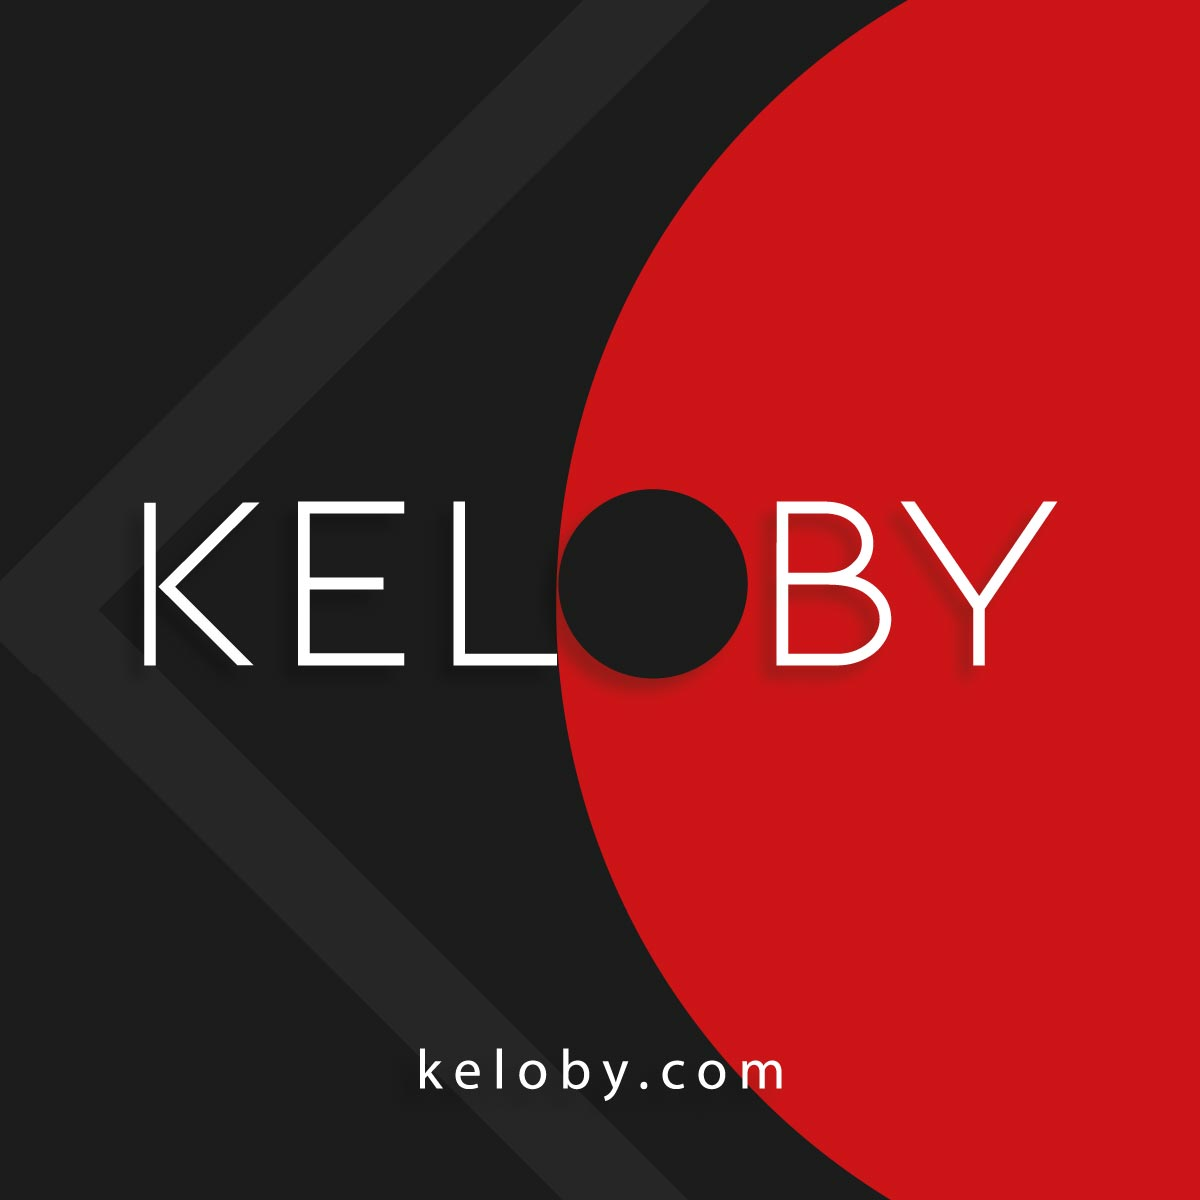 Keloby Branding Name for sale